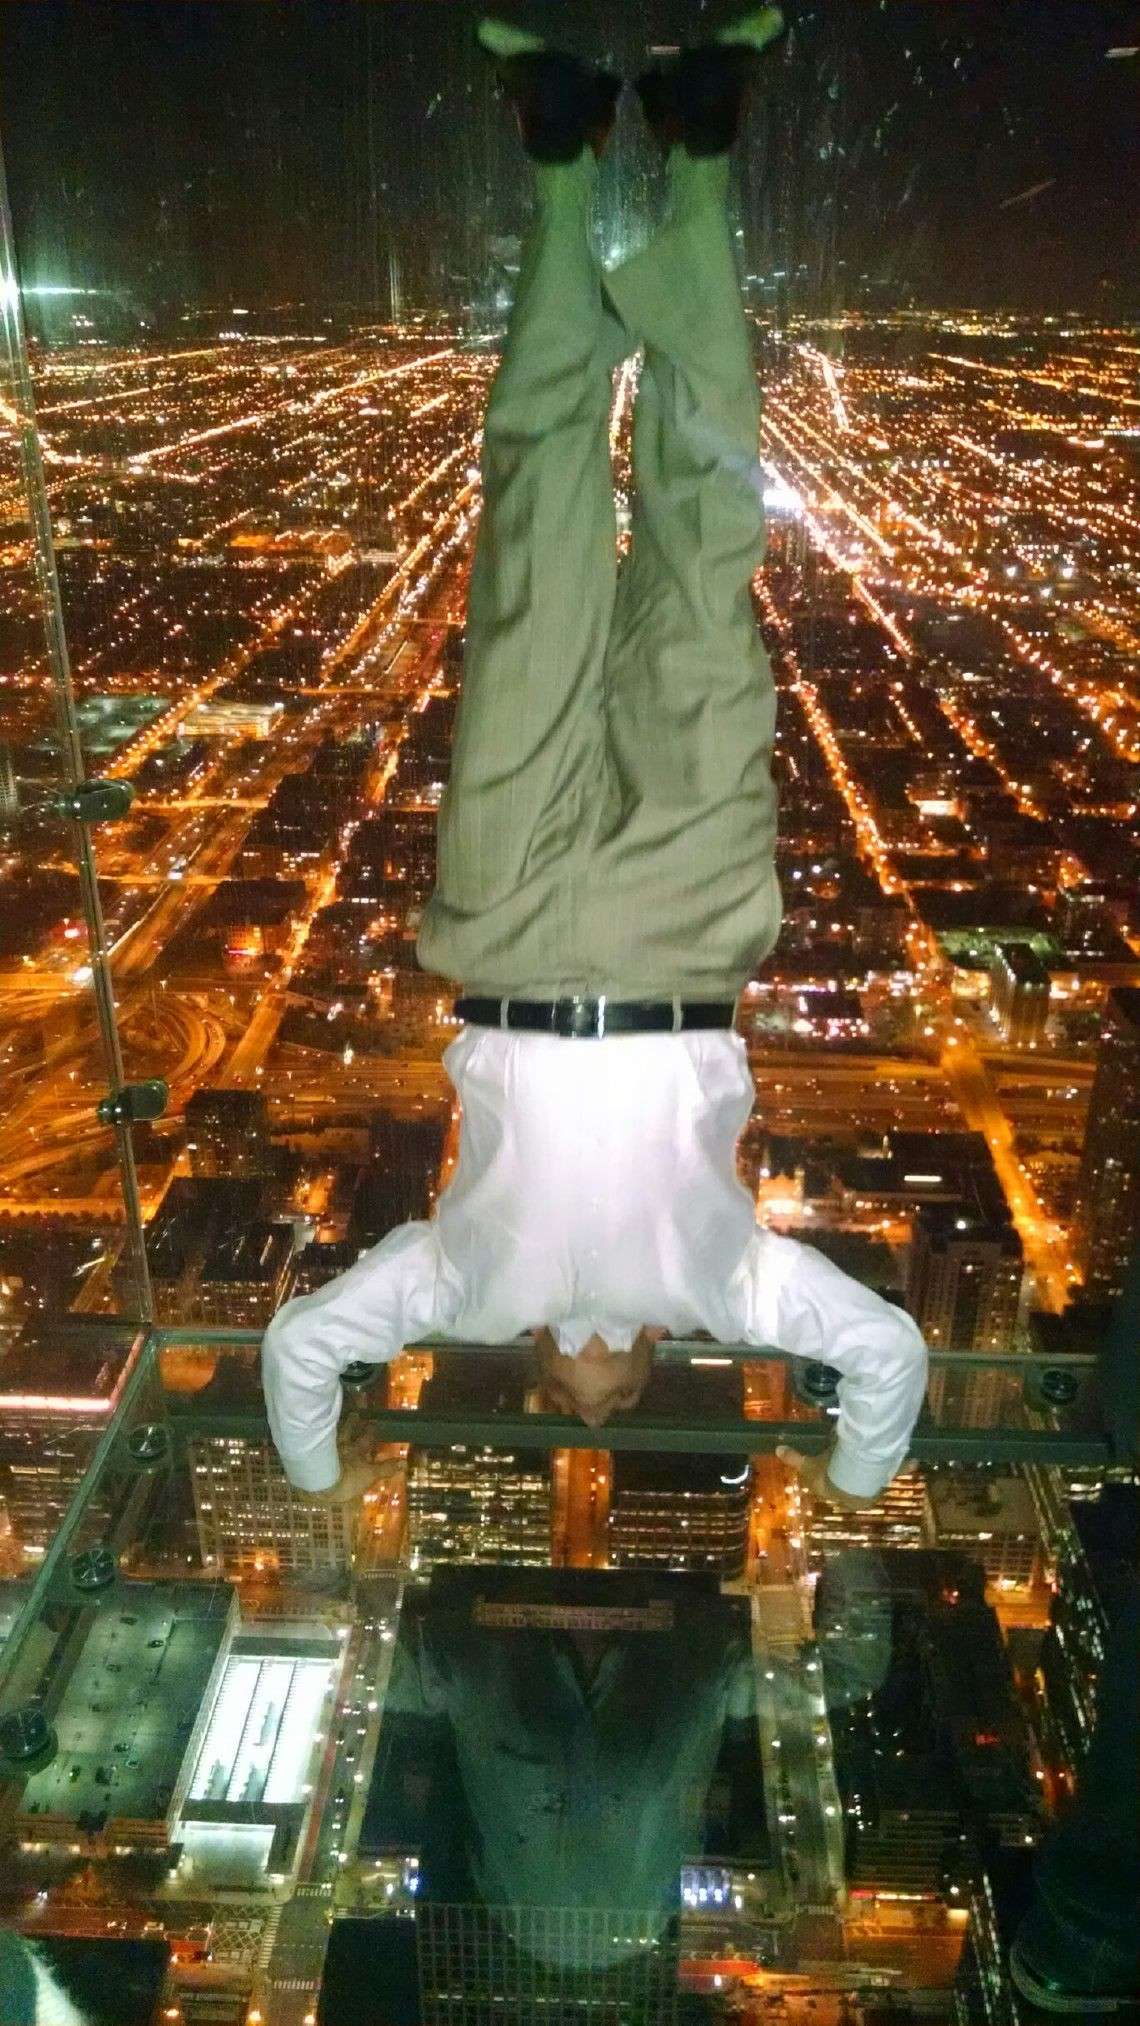 While many at the Monday night reception feared to tread out on the Willis Tower Ledge, Cliexie Media LLC Executive Director Tim Moore performed a handstand inside the glass box 1,353 up in the air.